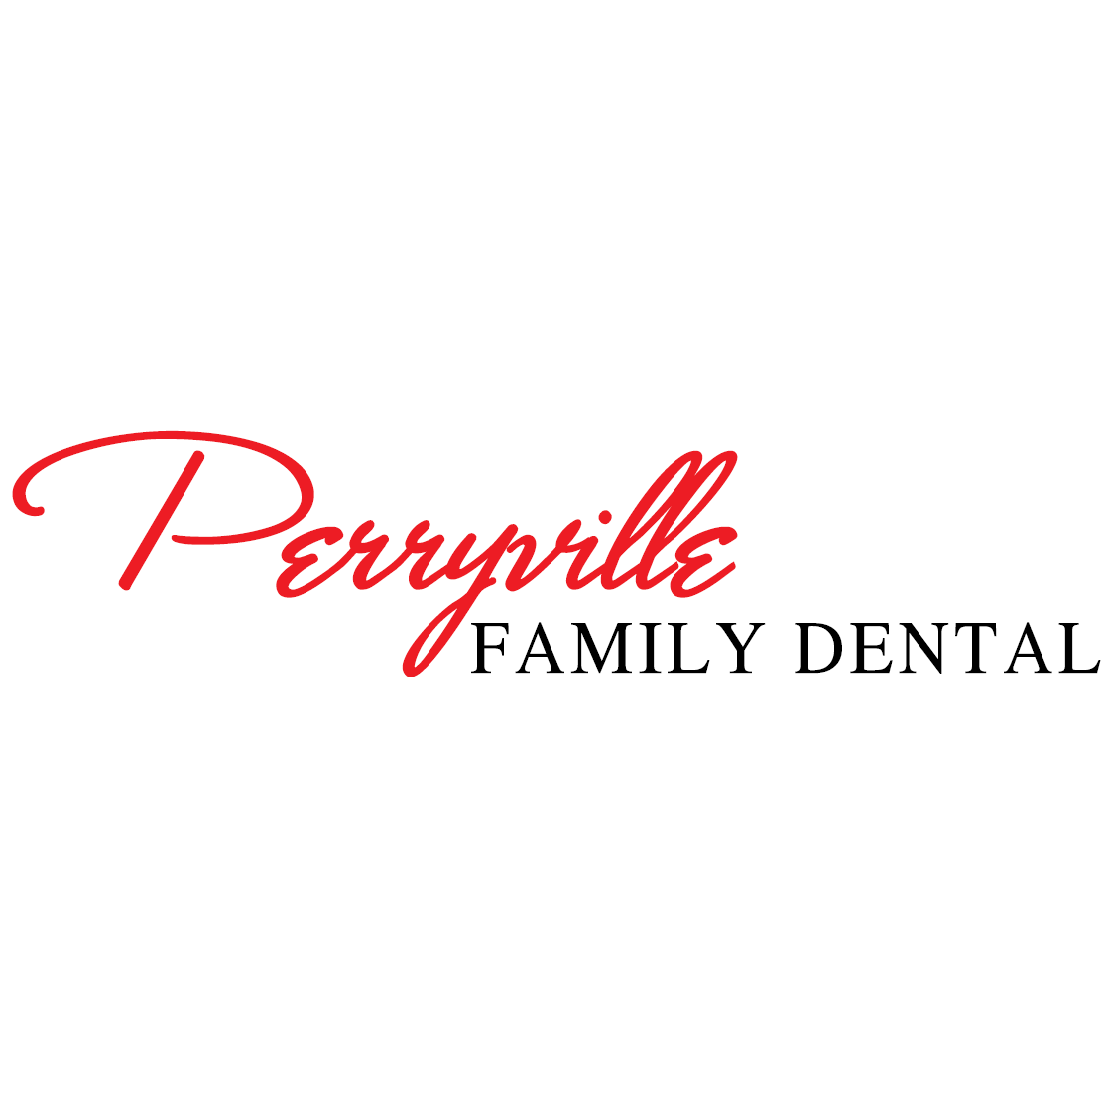 Perryville Family Dental - Perryville, AR 72126 - (501)391-7020 | ShowMeLocal.com